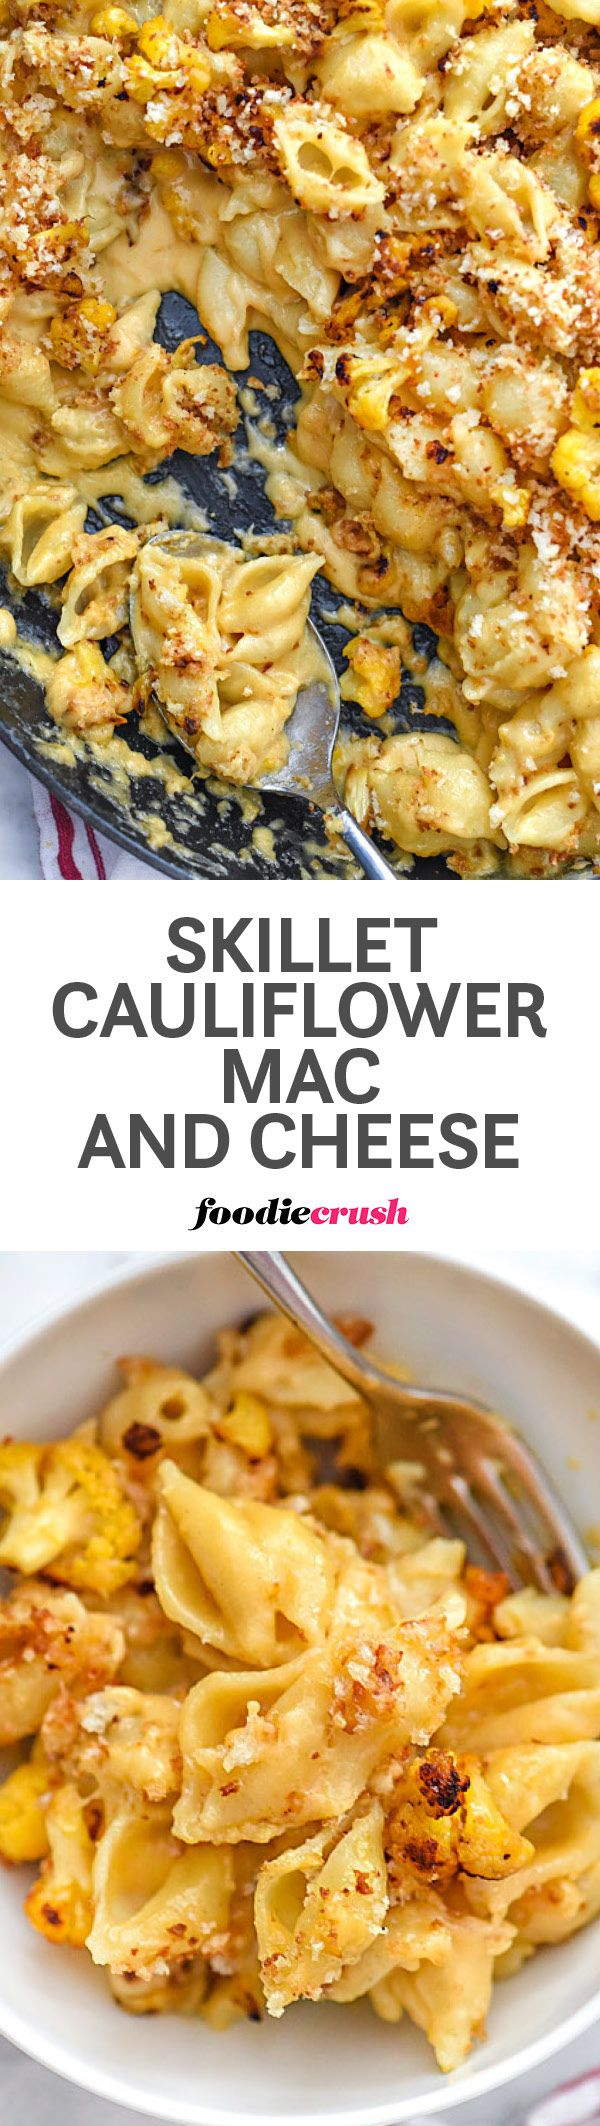 This ultimate comfort food recipe gets a veggie bump with caramelized cauliflower added to this smooth and velvety cheesy pasta for a new family favorite   foodiecrush.com #macandcheese #comfortfood #cauliflower